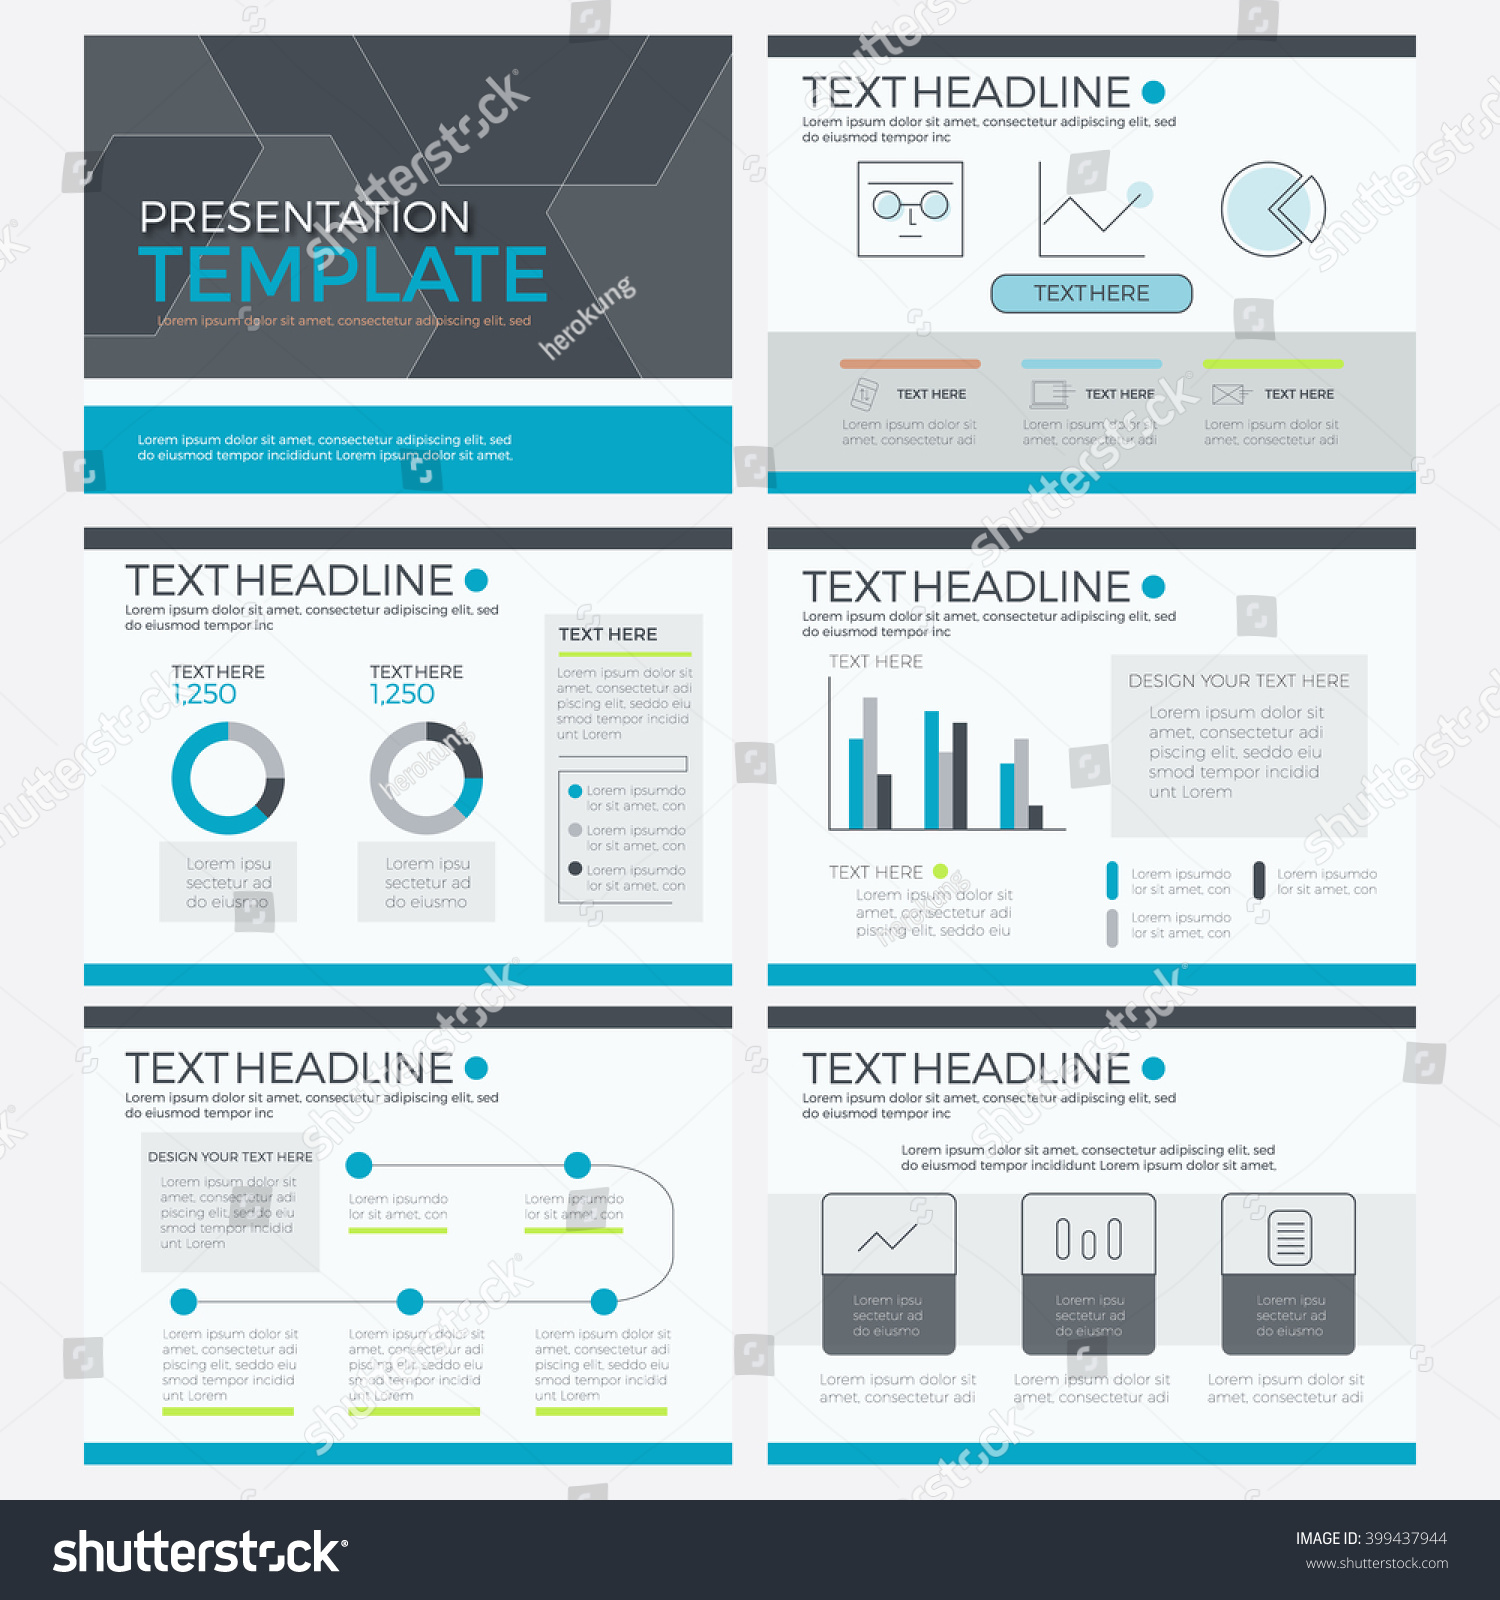 Template business powerpoint template presentation template business powerpoint template presentation templatebackground accmission Choice Image